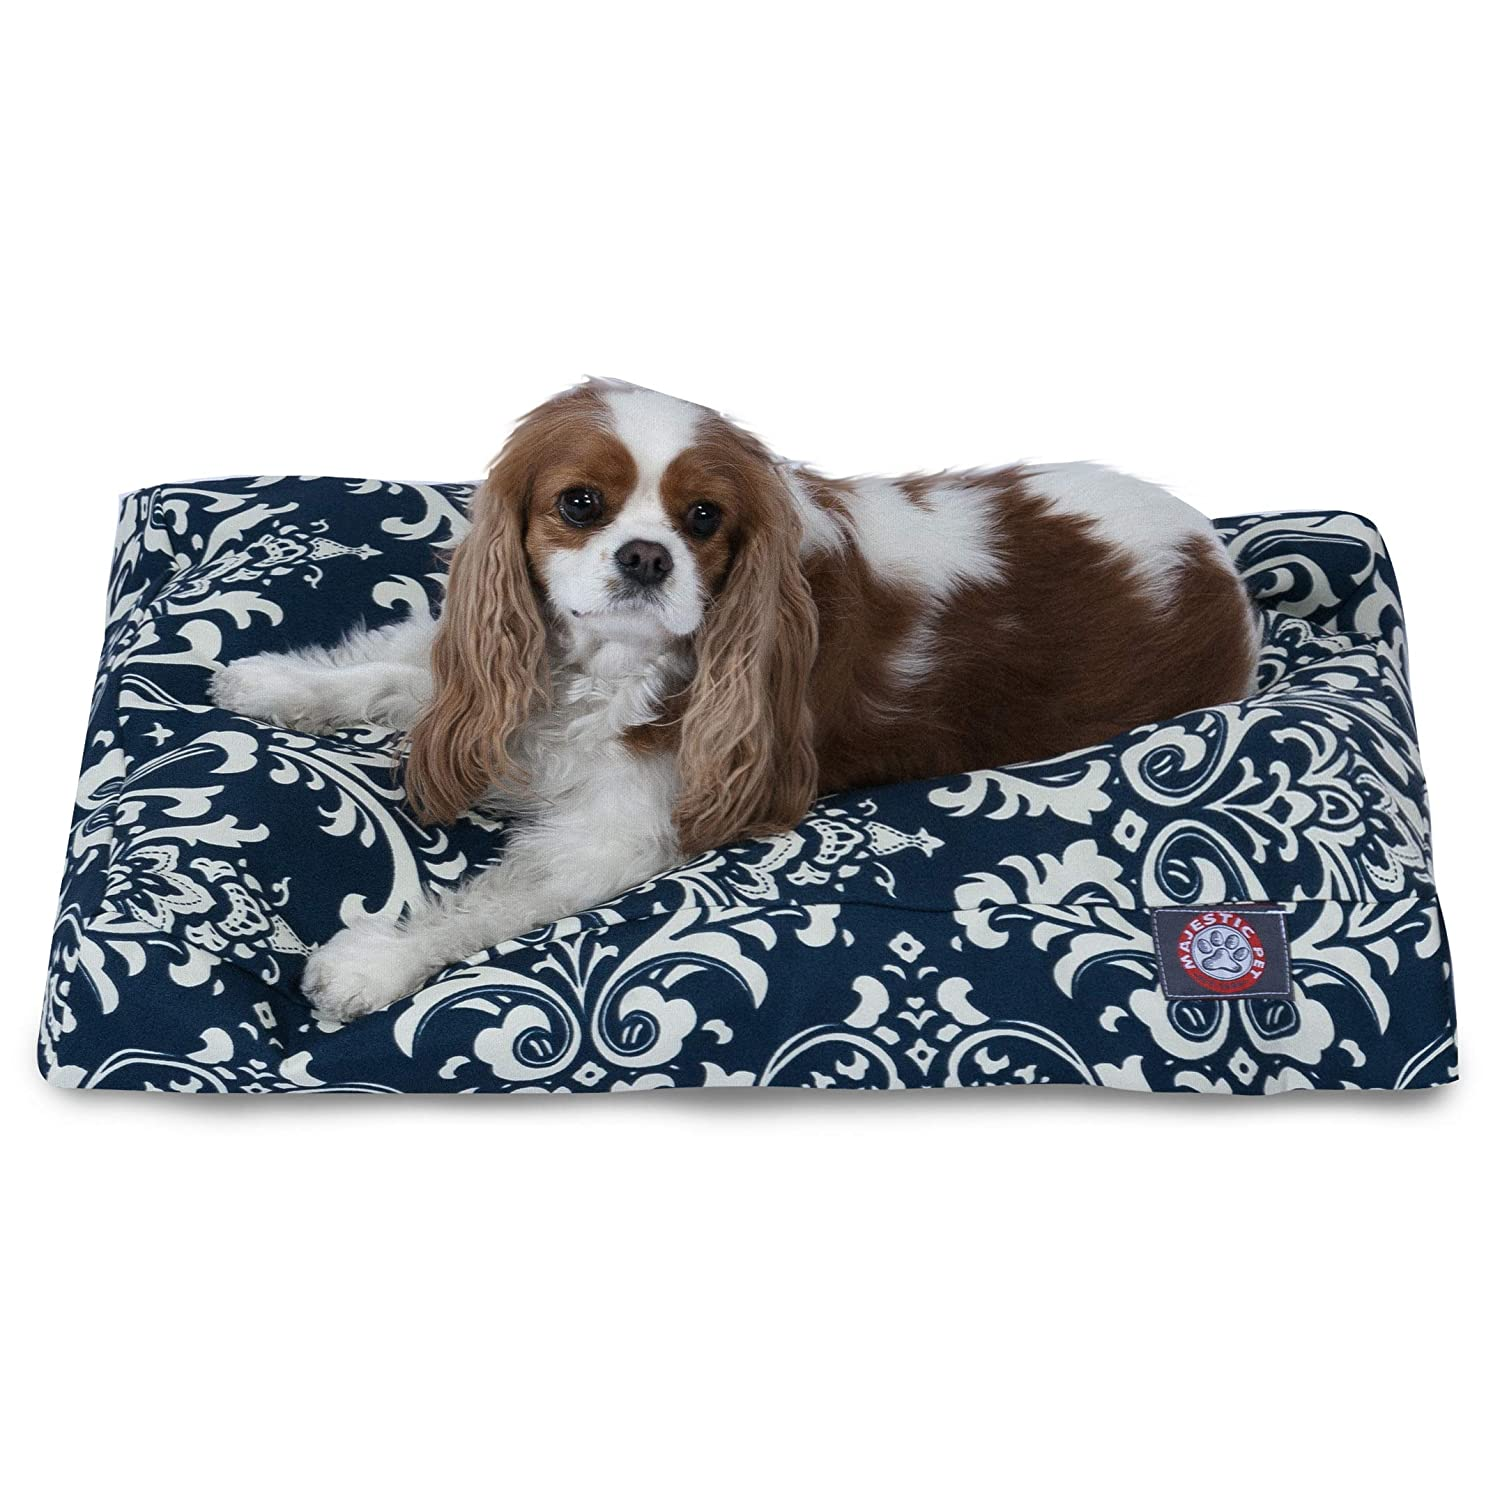 Navy bluee S Navy bluee S Majestic Pet Navy bluee French Quarter Small Rectangle Indoor Outdoor Pet Dog Bed With Removable Washable Cover Products